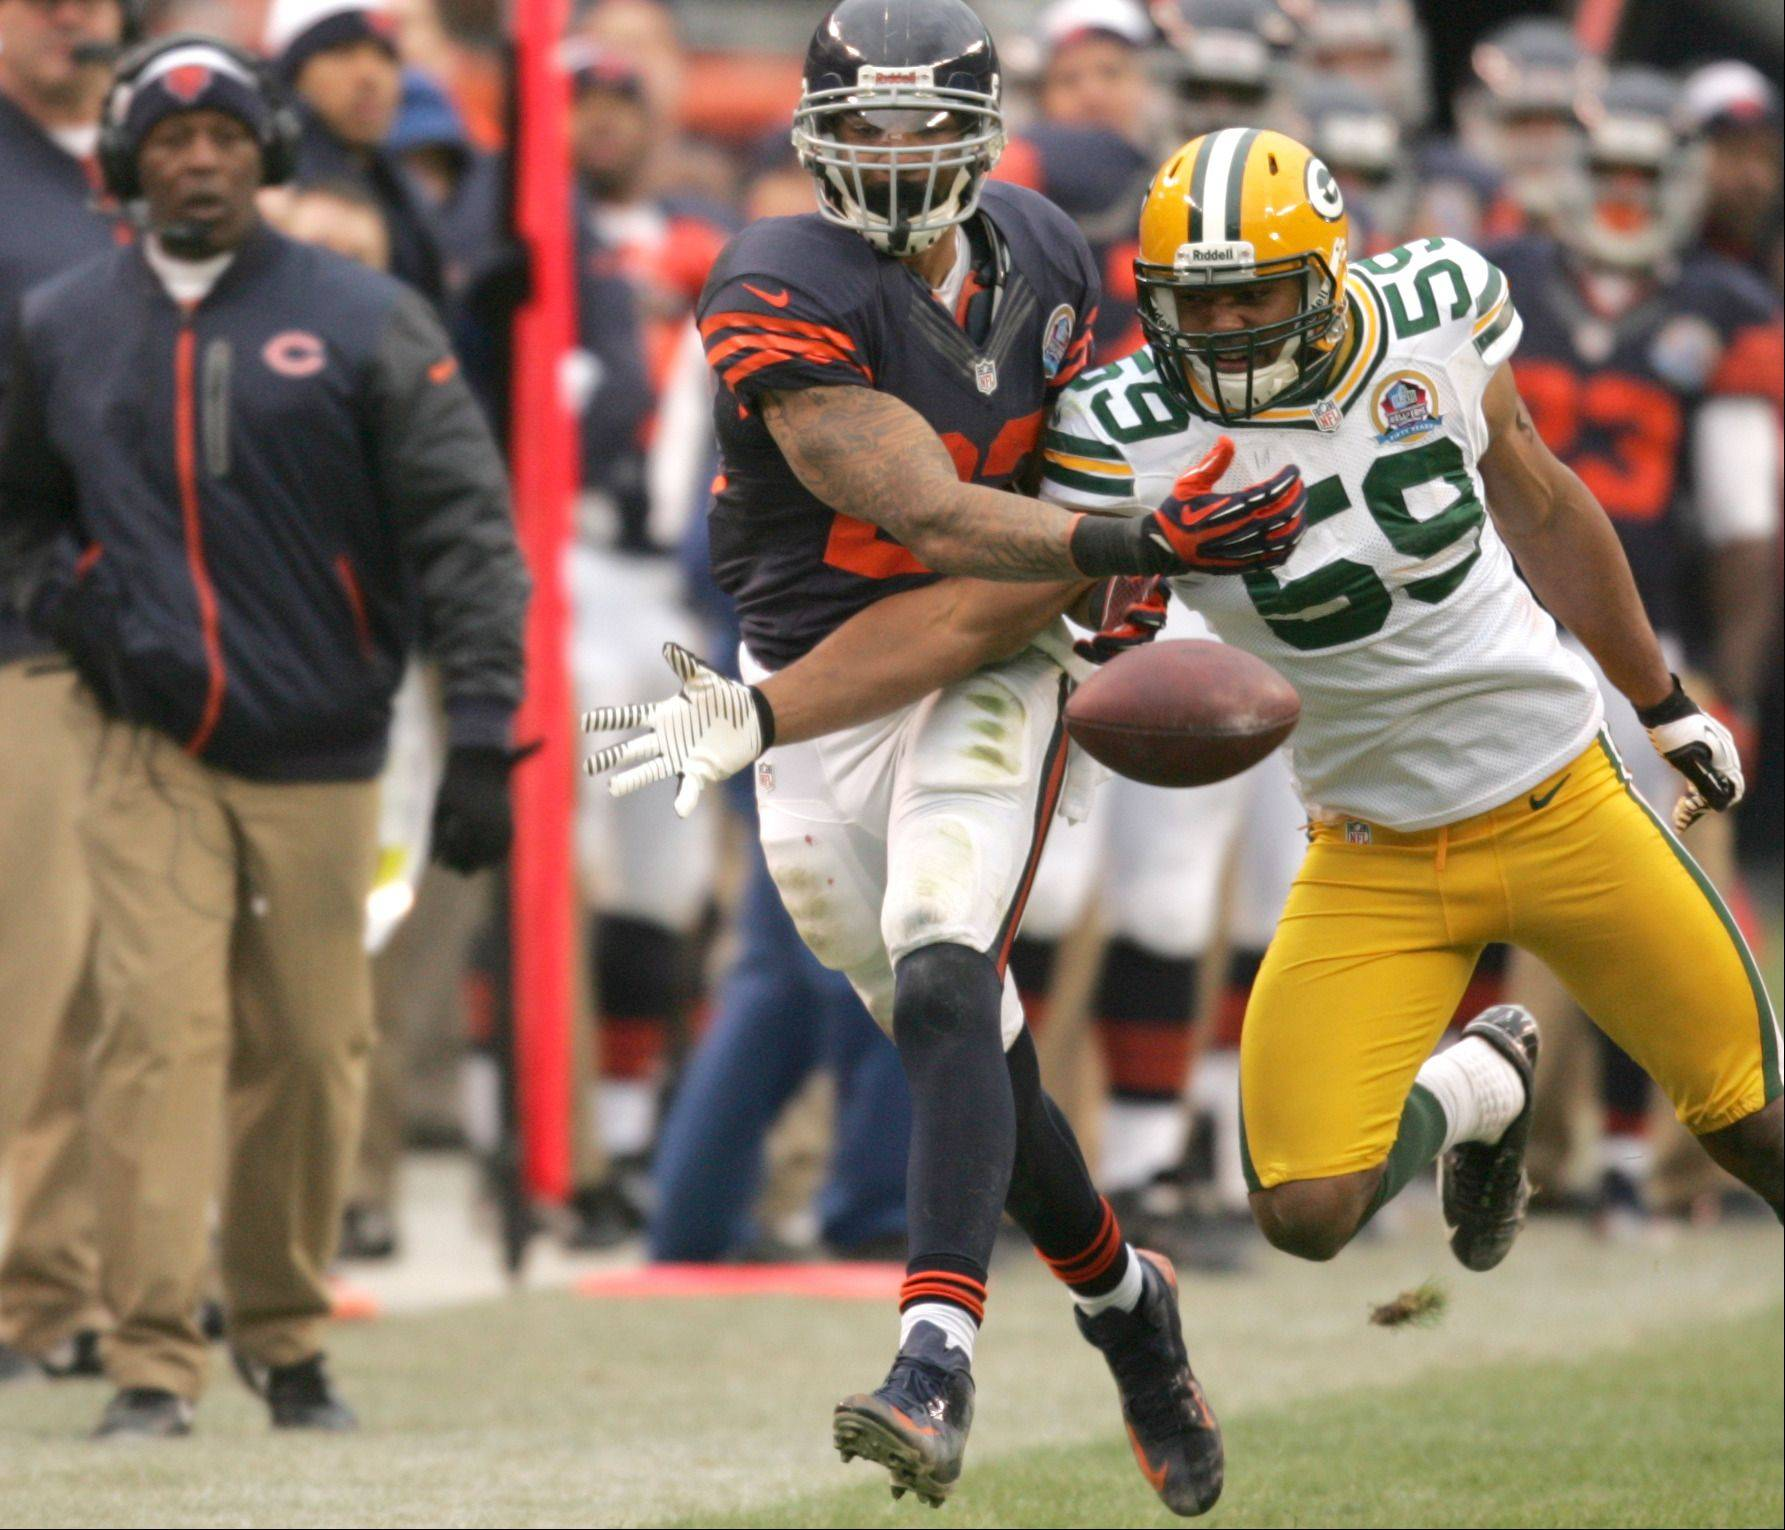 Chicago Bears running back Matt Forte (22) gets tangled up with Green Bay Packers inside linebacker Brad Jones (59) on a Jay Cutler pass during Sunday's game at Soldier Field in Chicago.